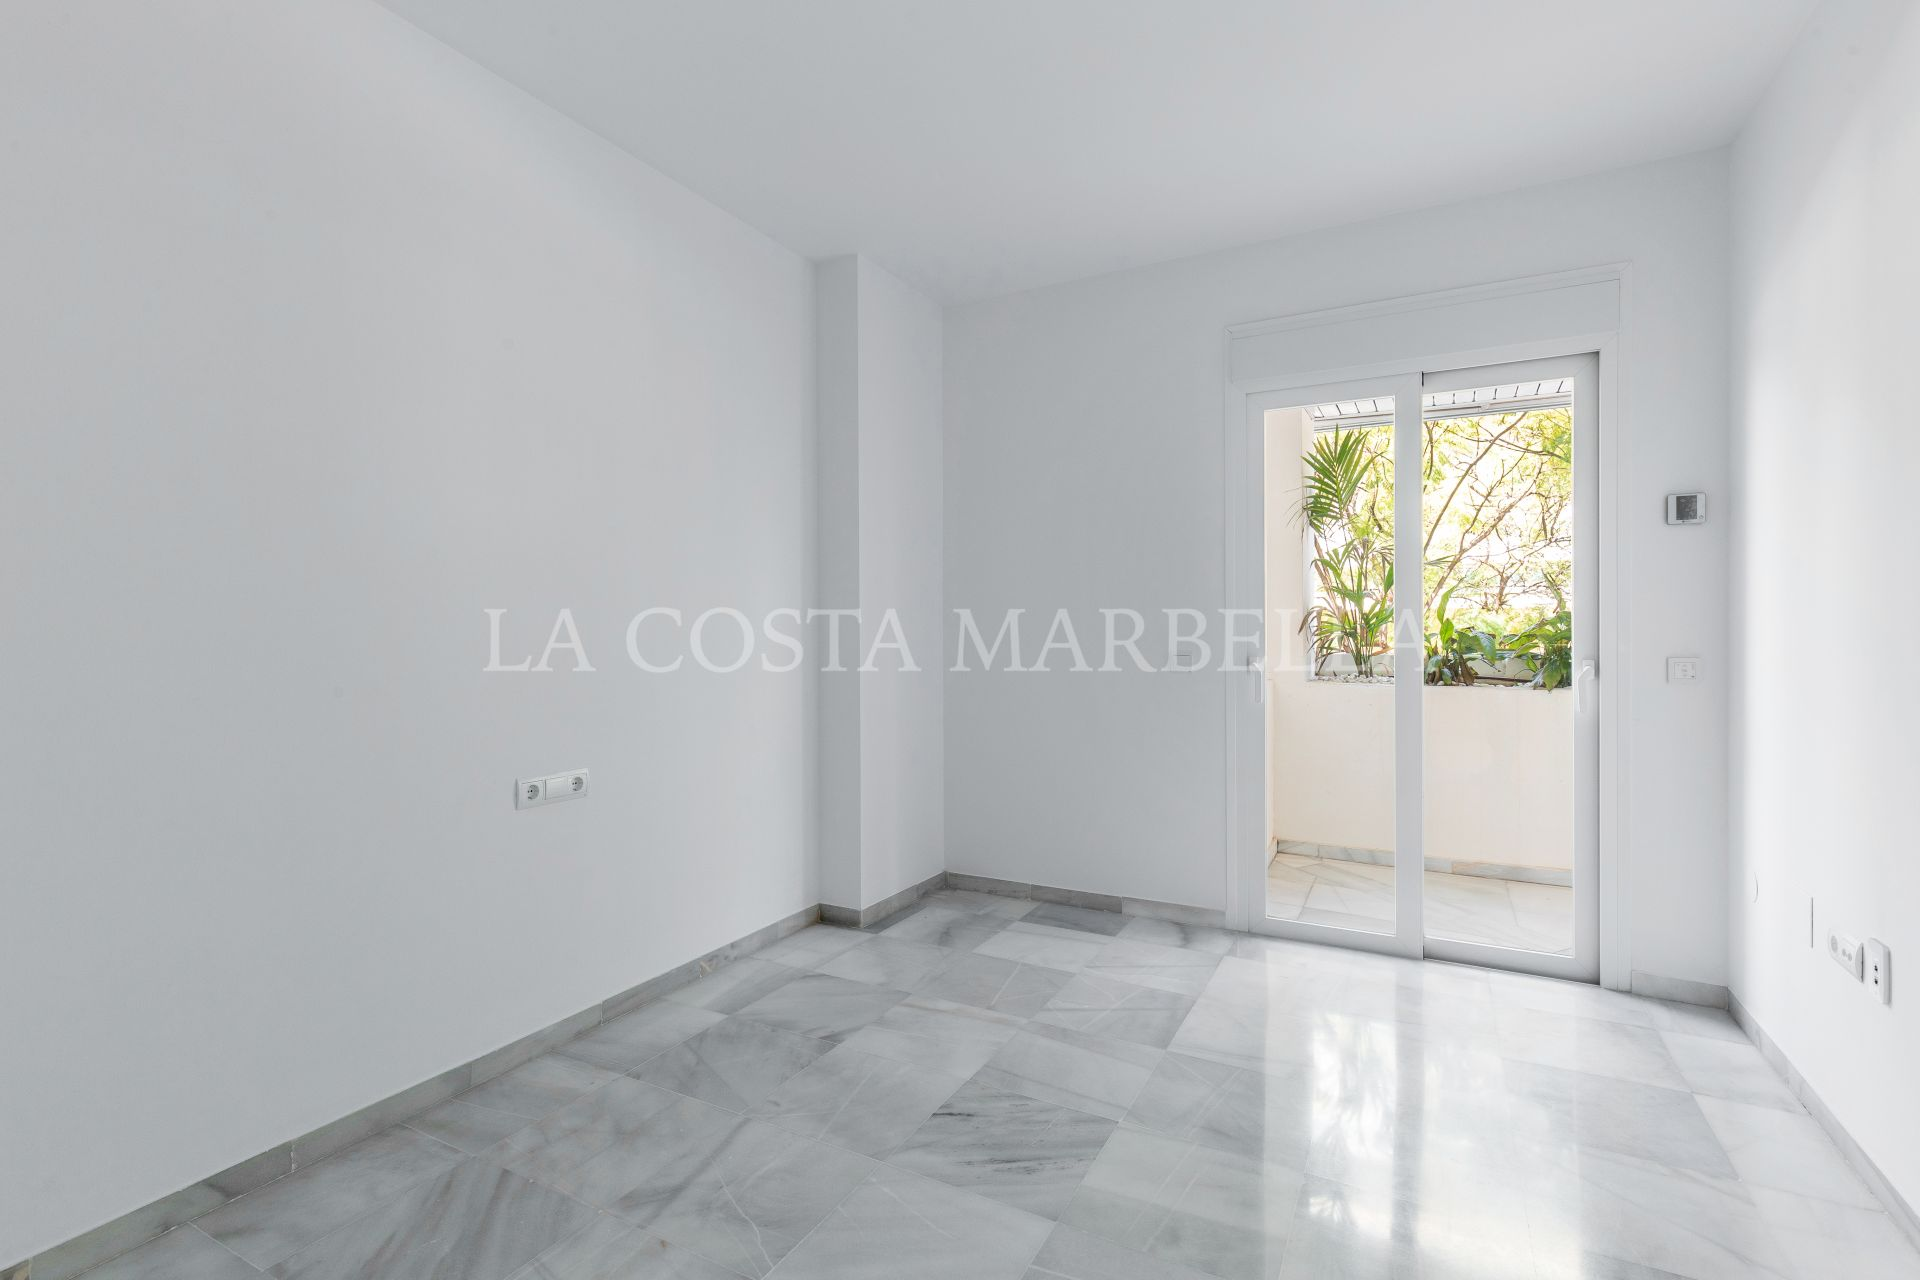 Apartment for sale in Marbella Centro, Marbella